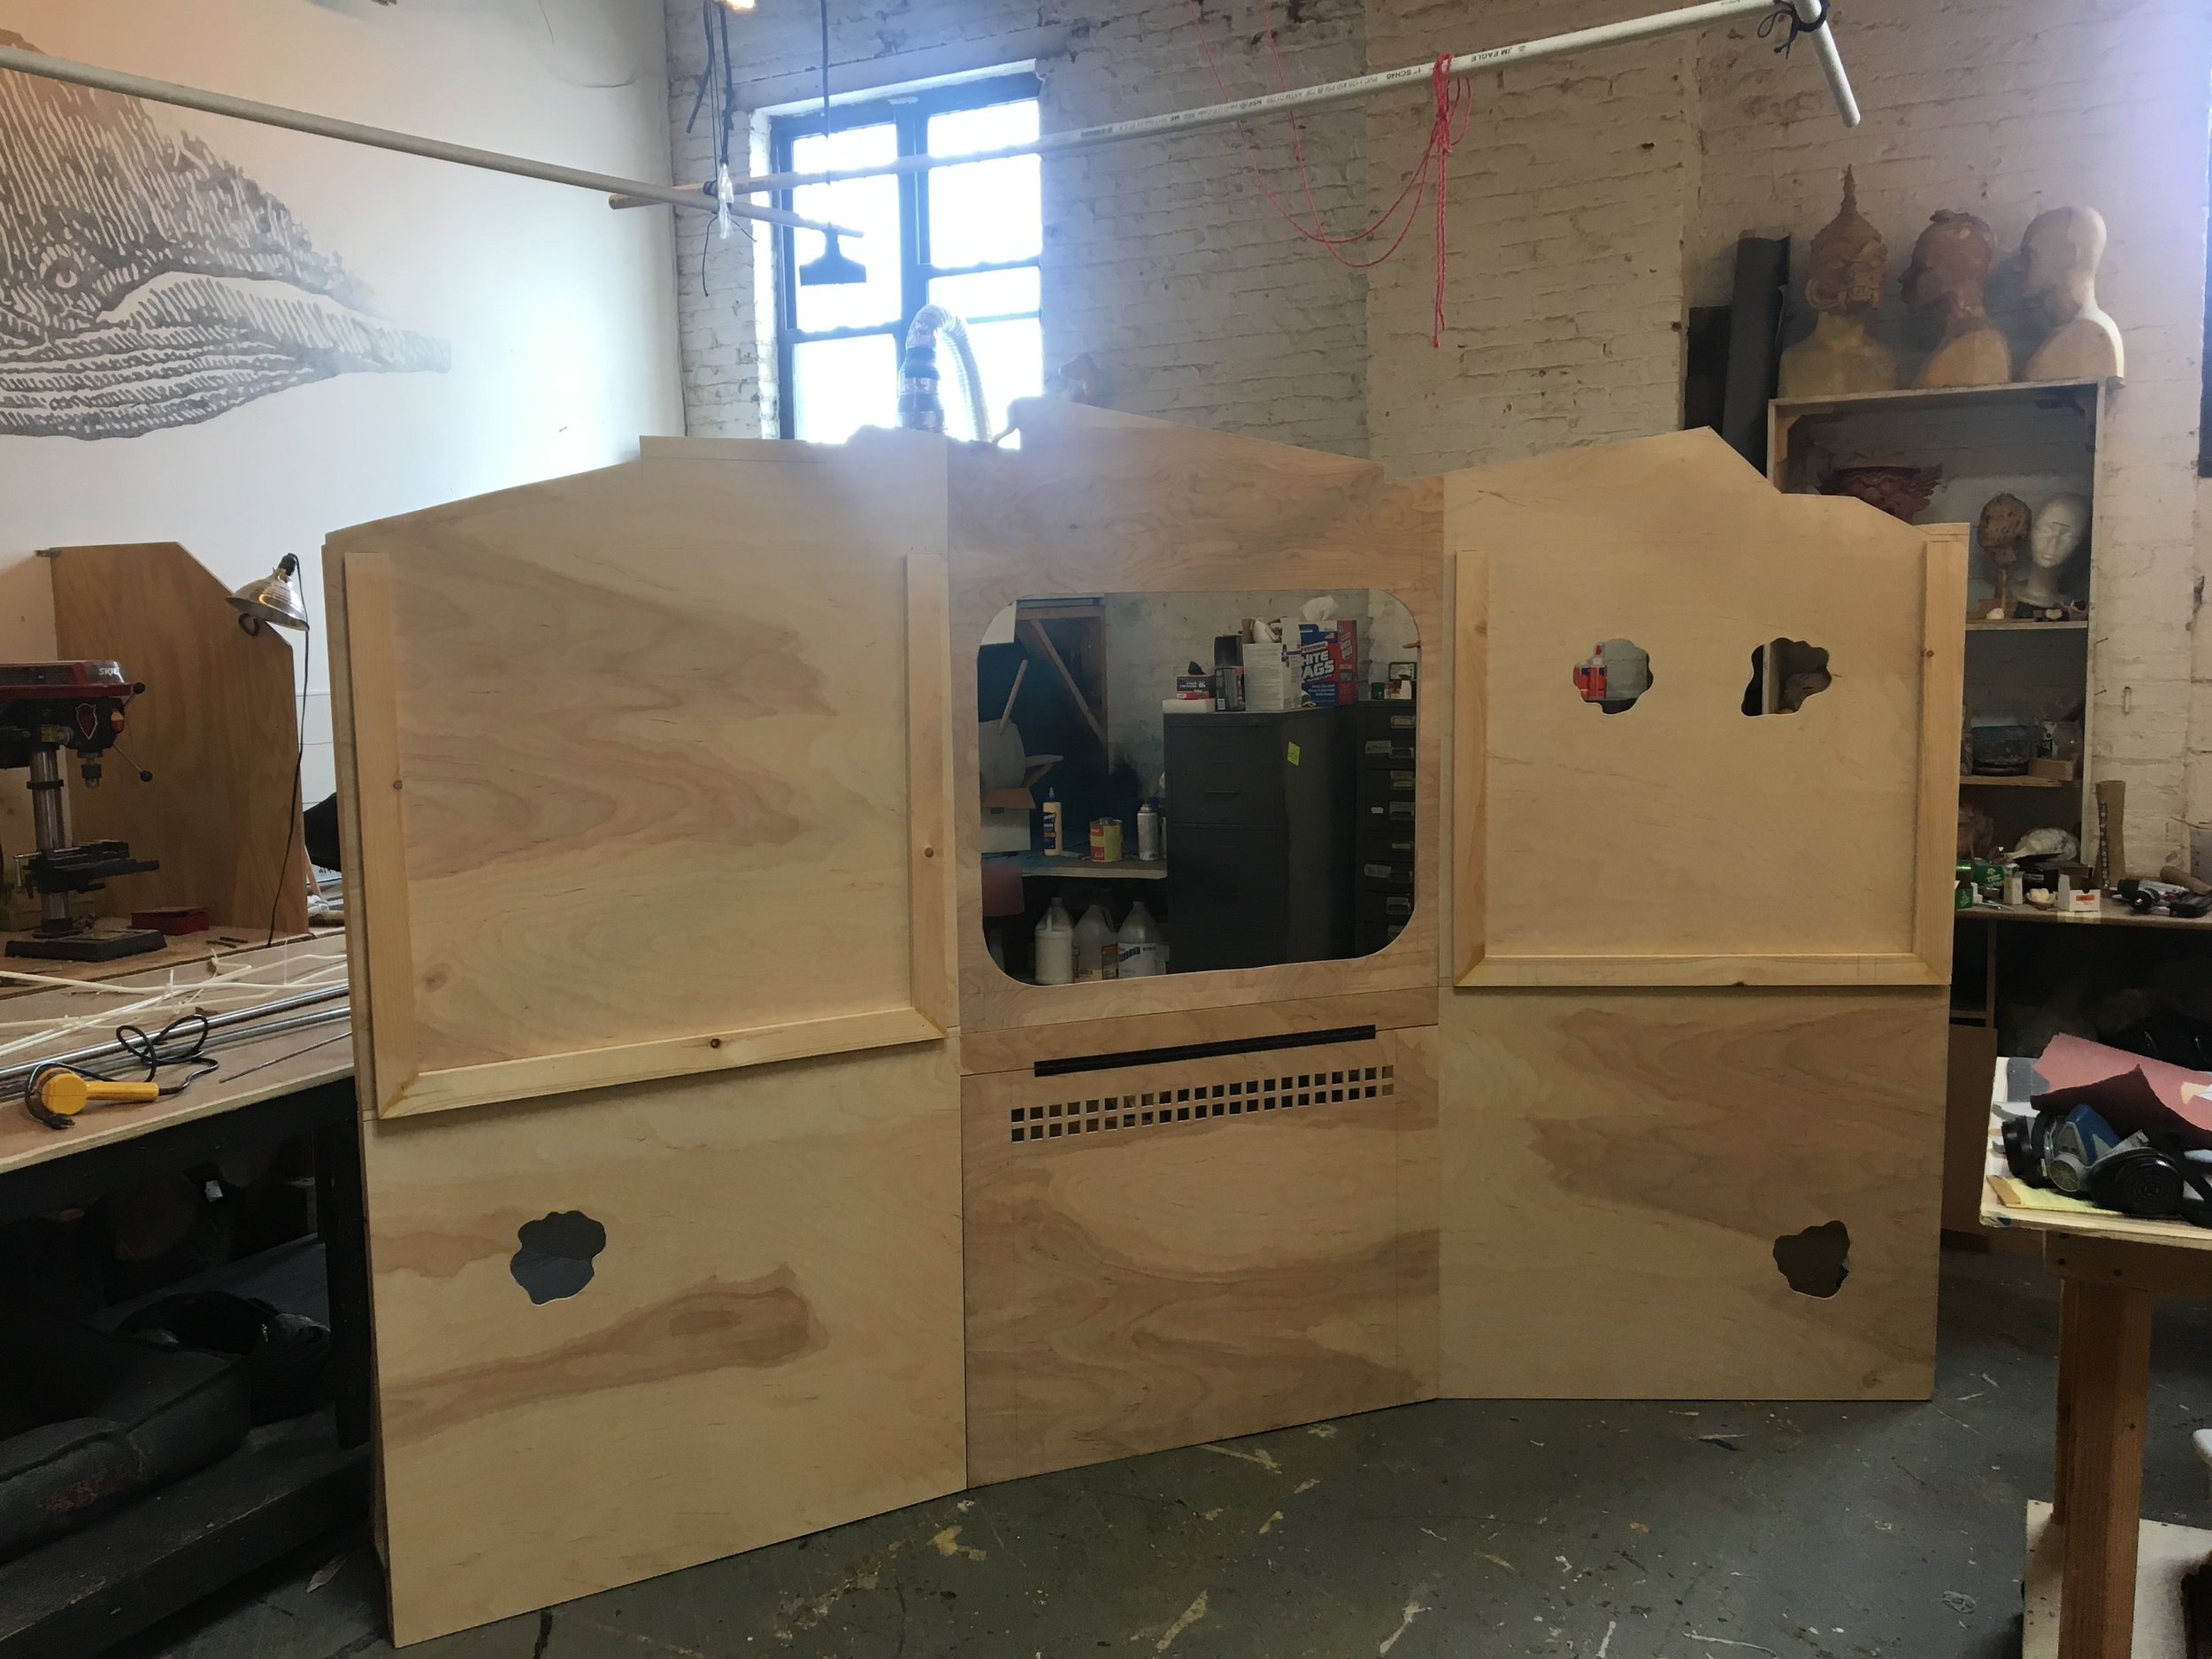 The panels of the machine, fresh from AchesonWalsh studios